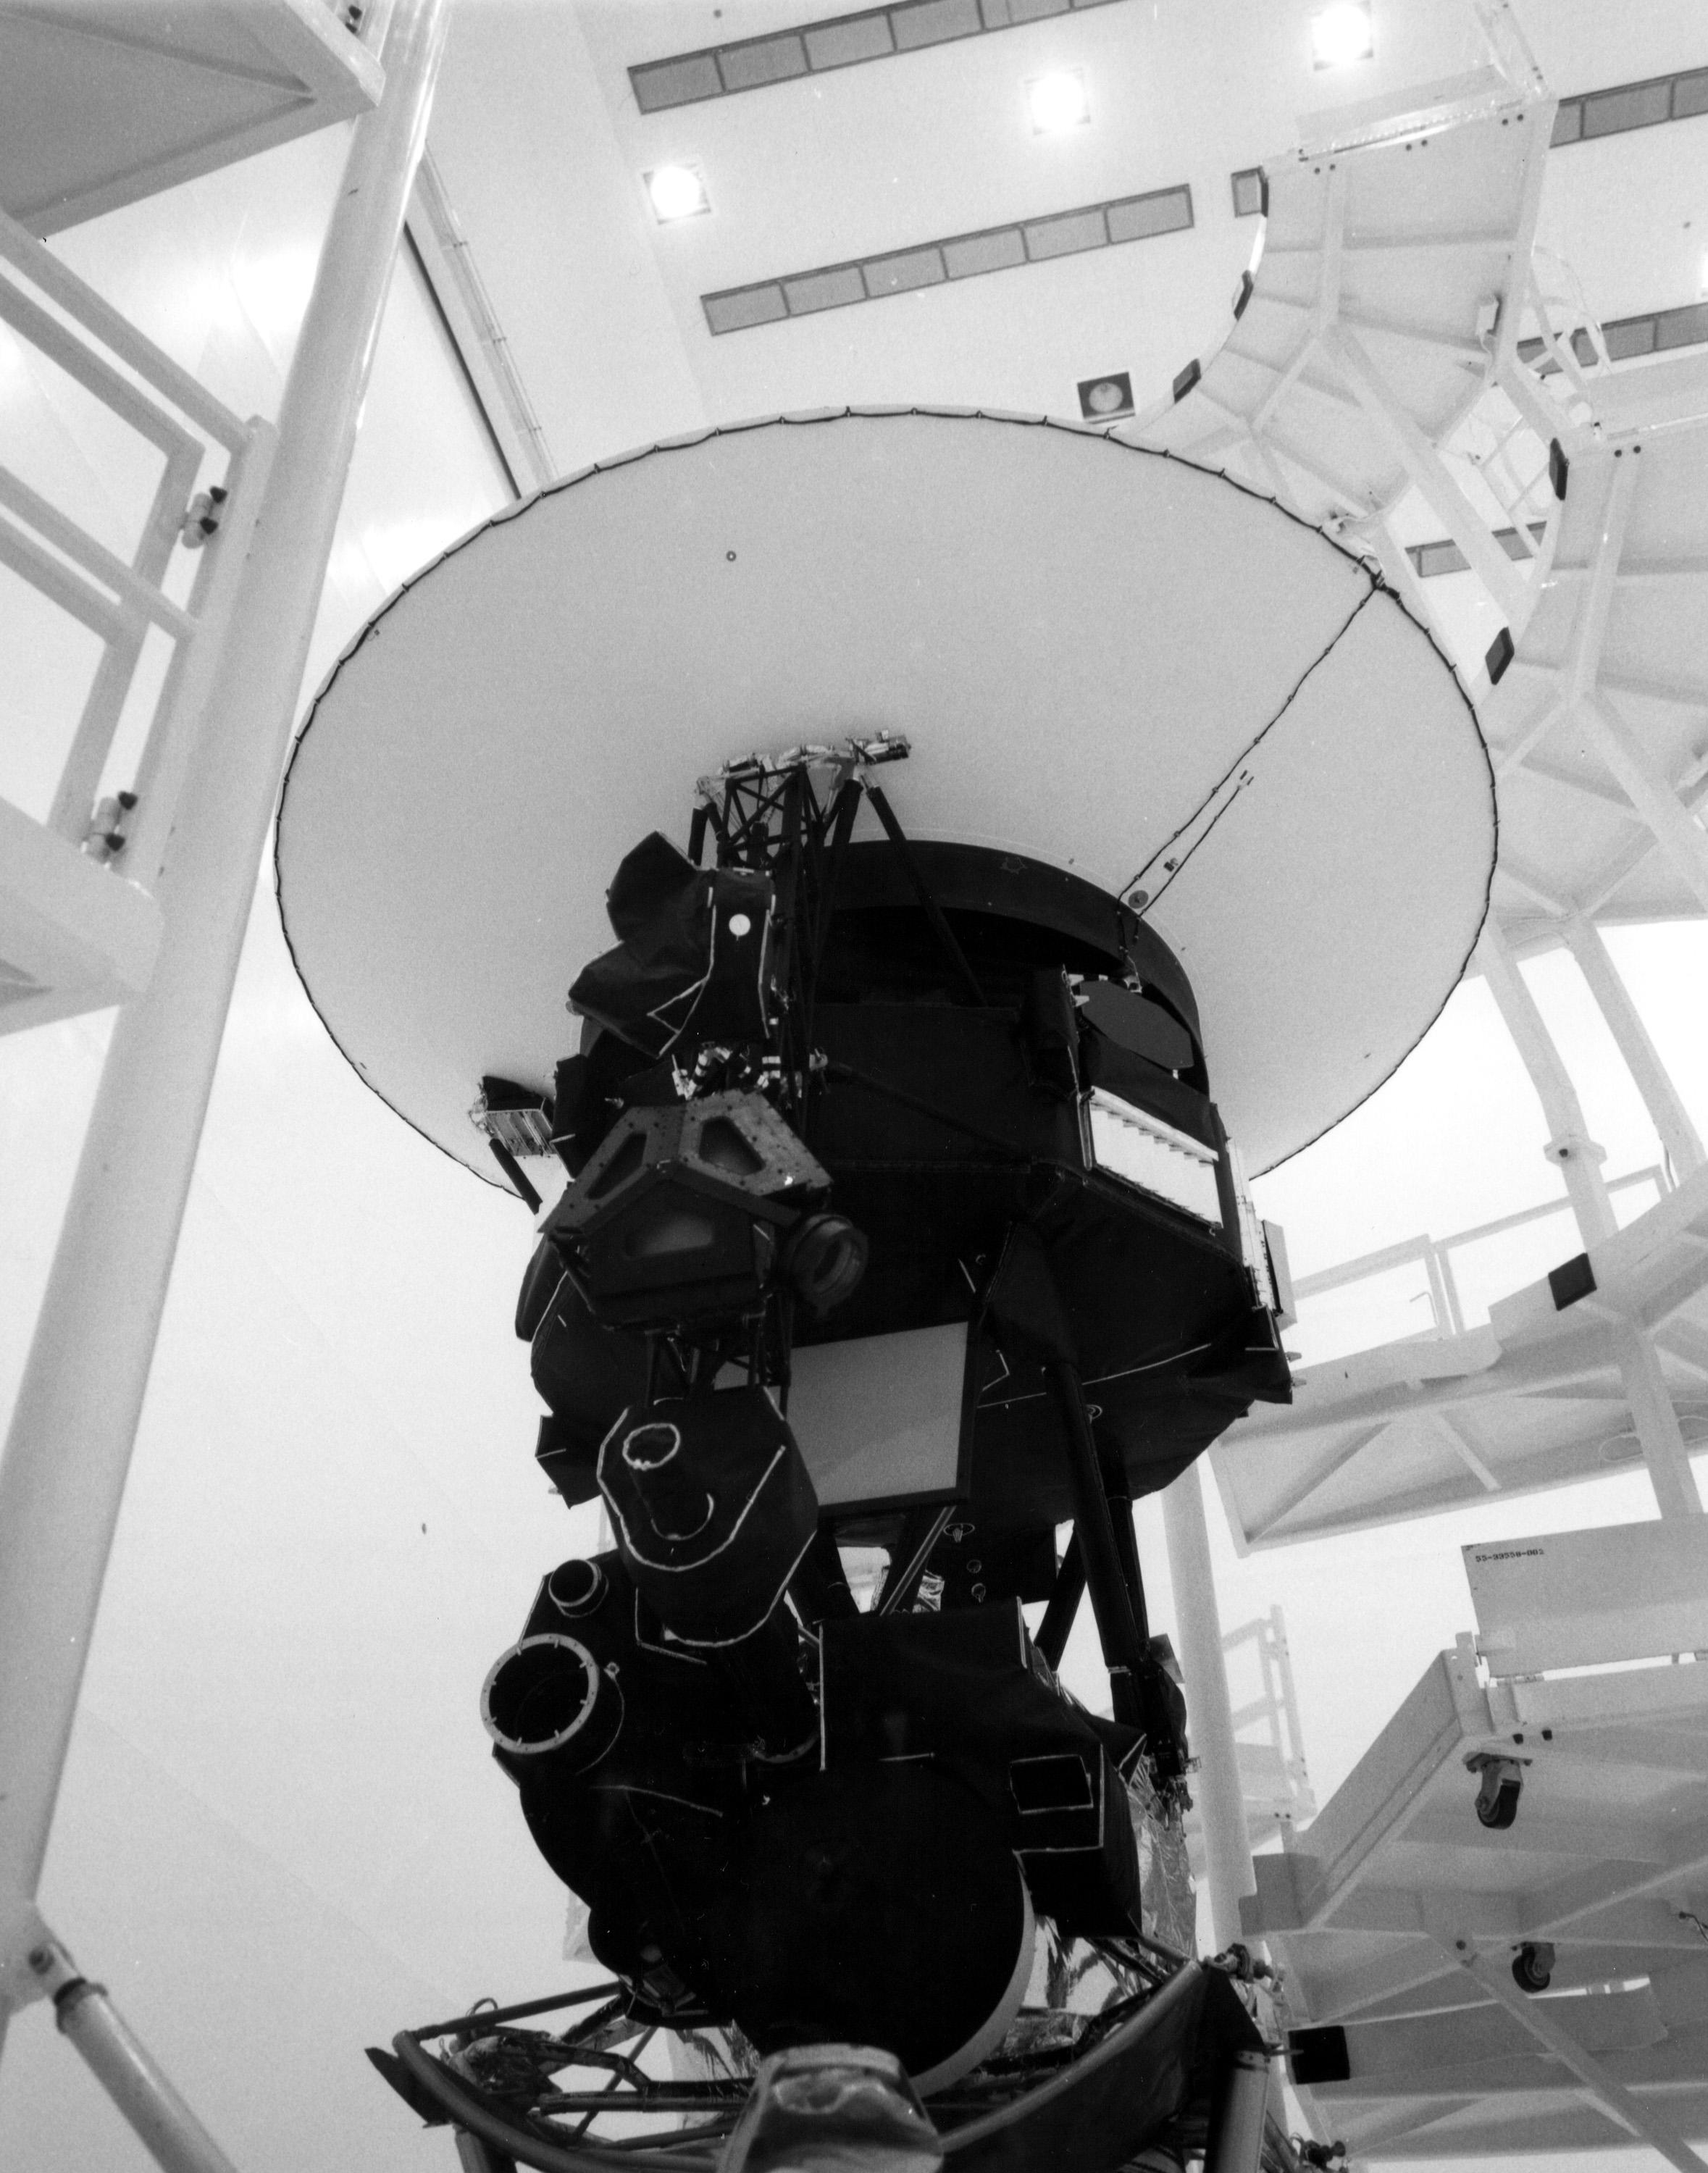 File:Voyager 1 reencapsulated.jpg - Wikimedia Commons